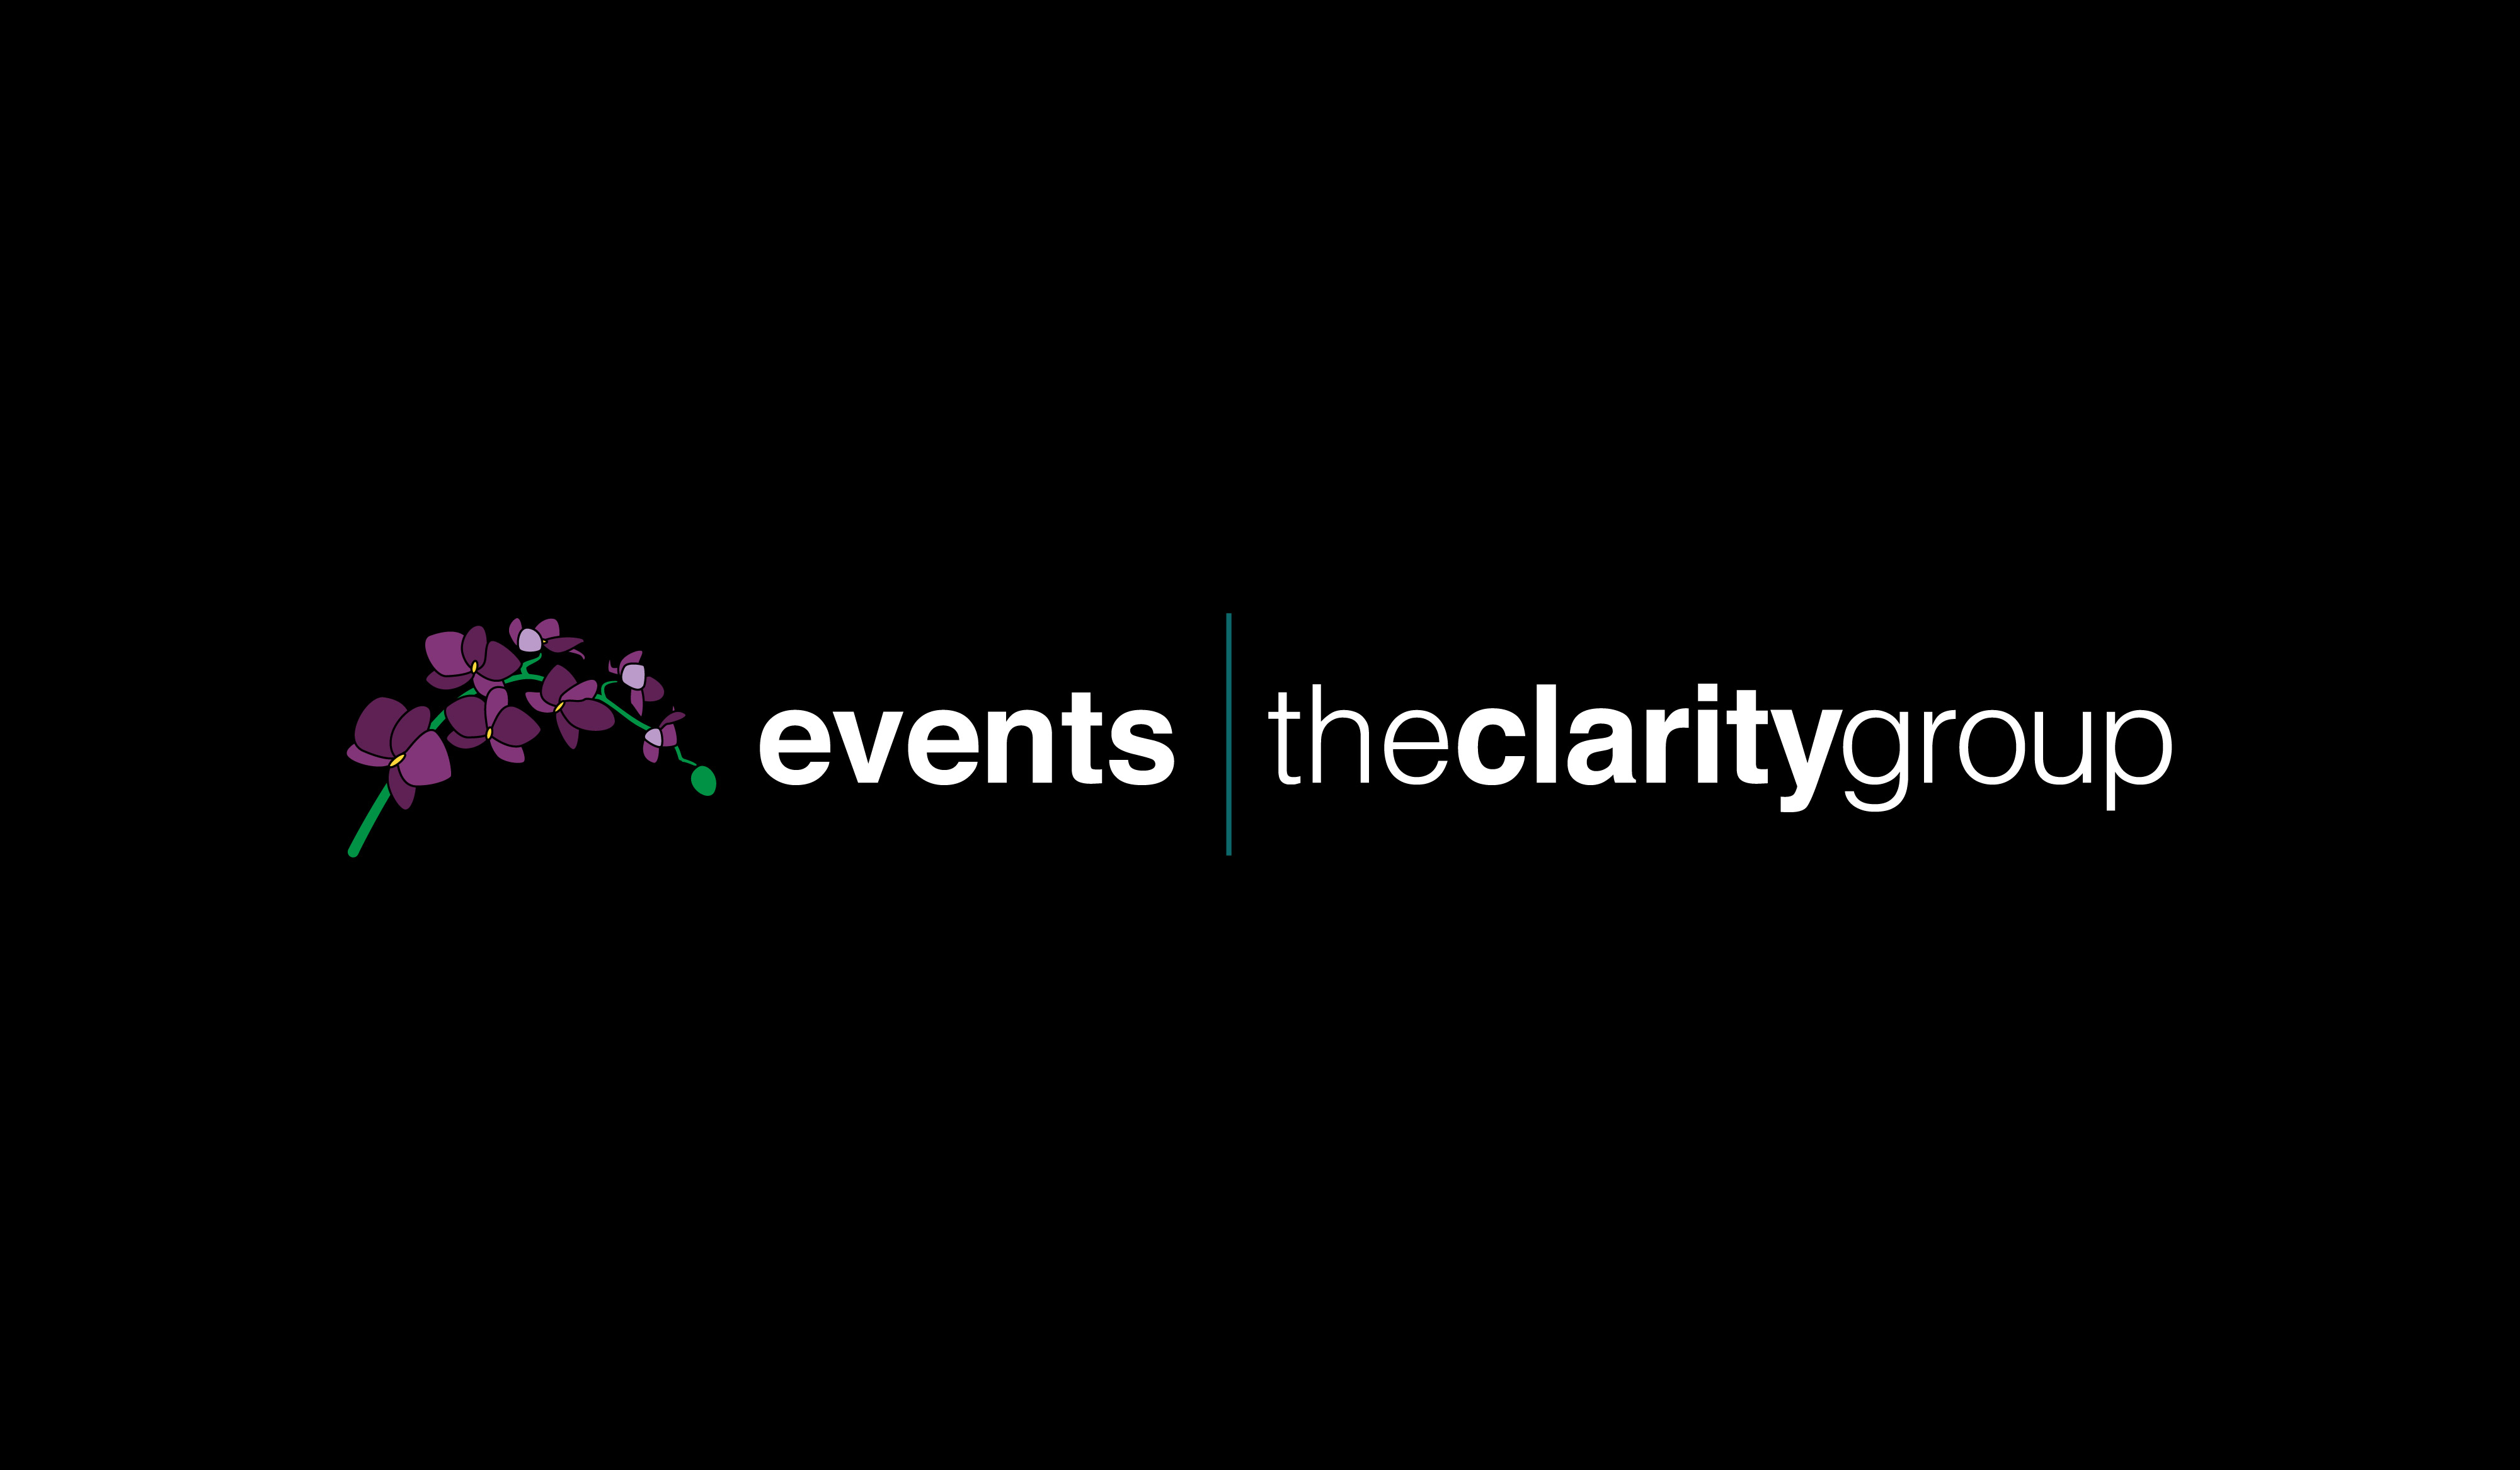 The Clarity Group events